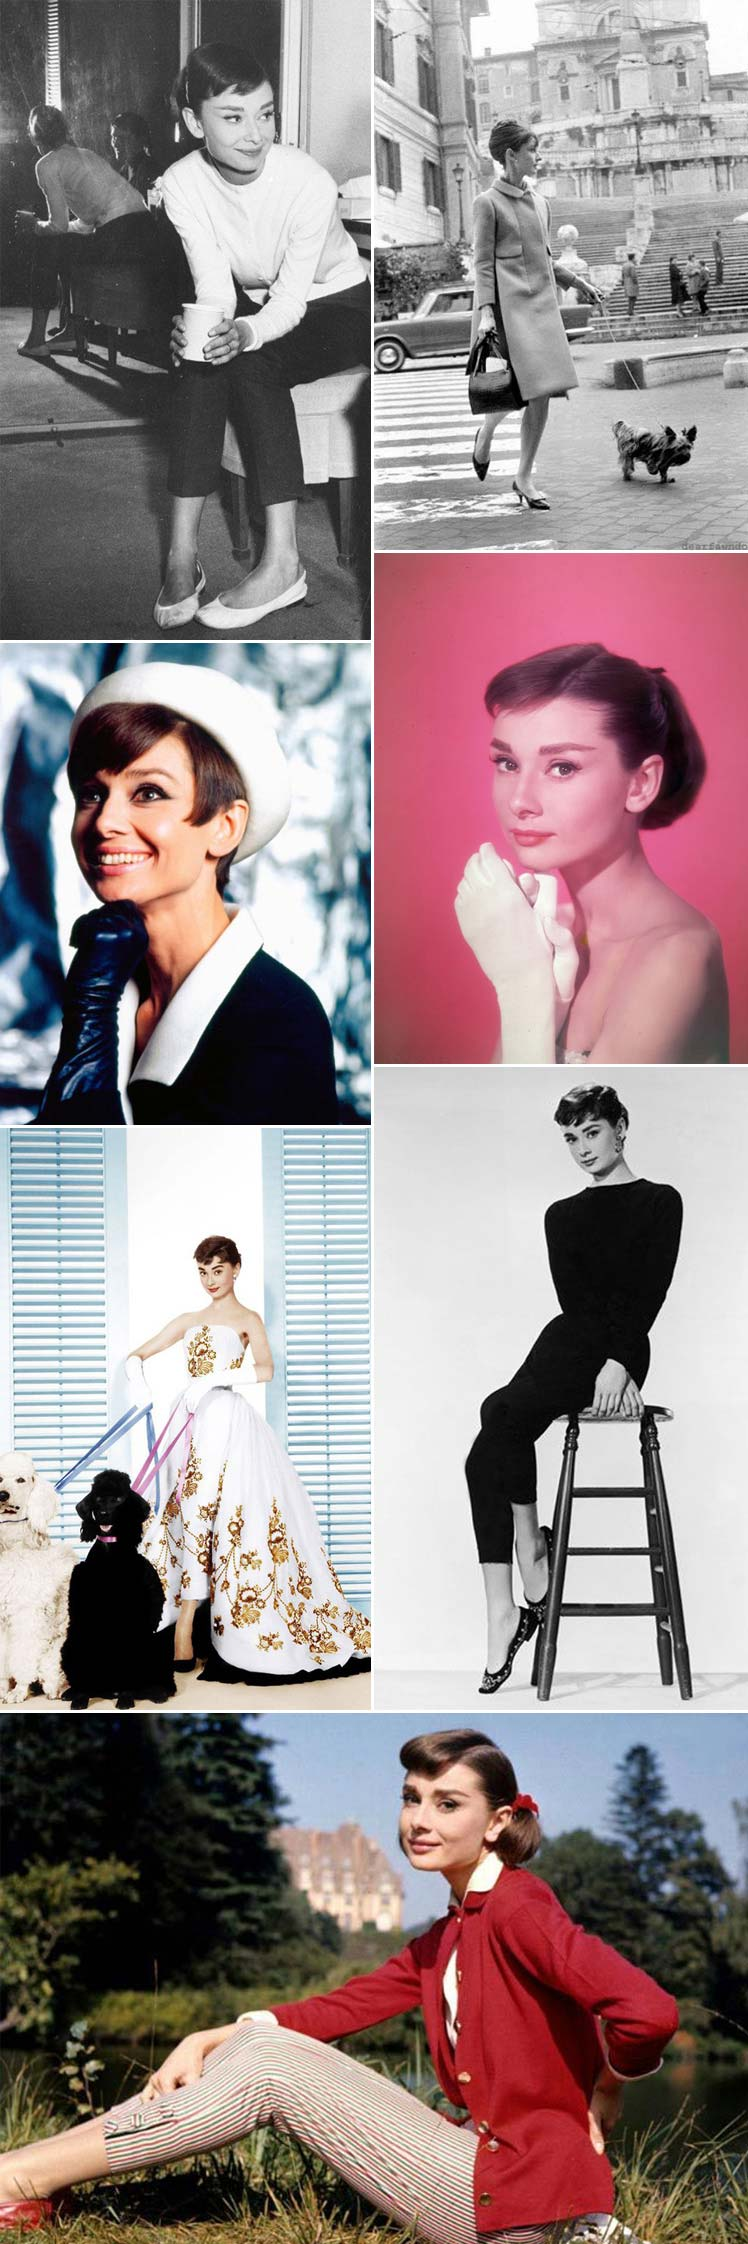 Take a look at the iconic style of Audrey Hepburn